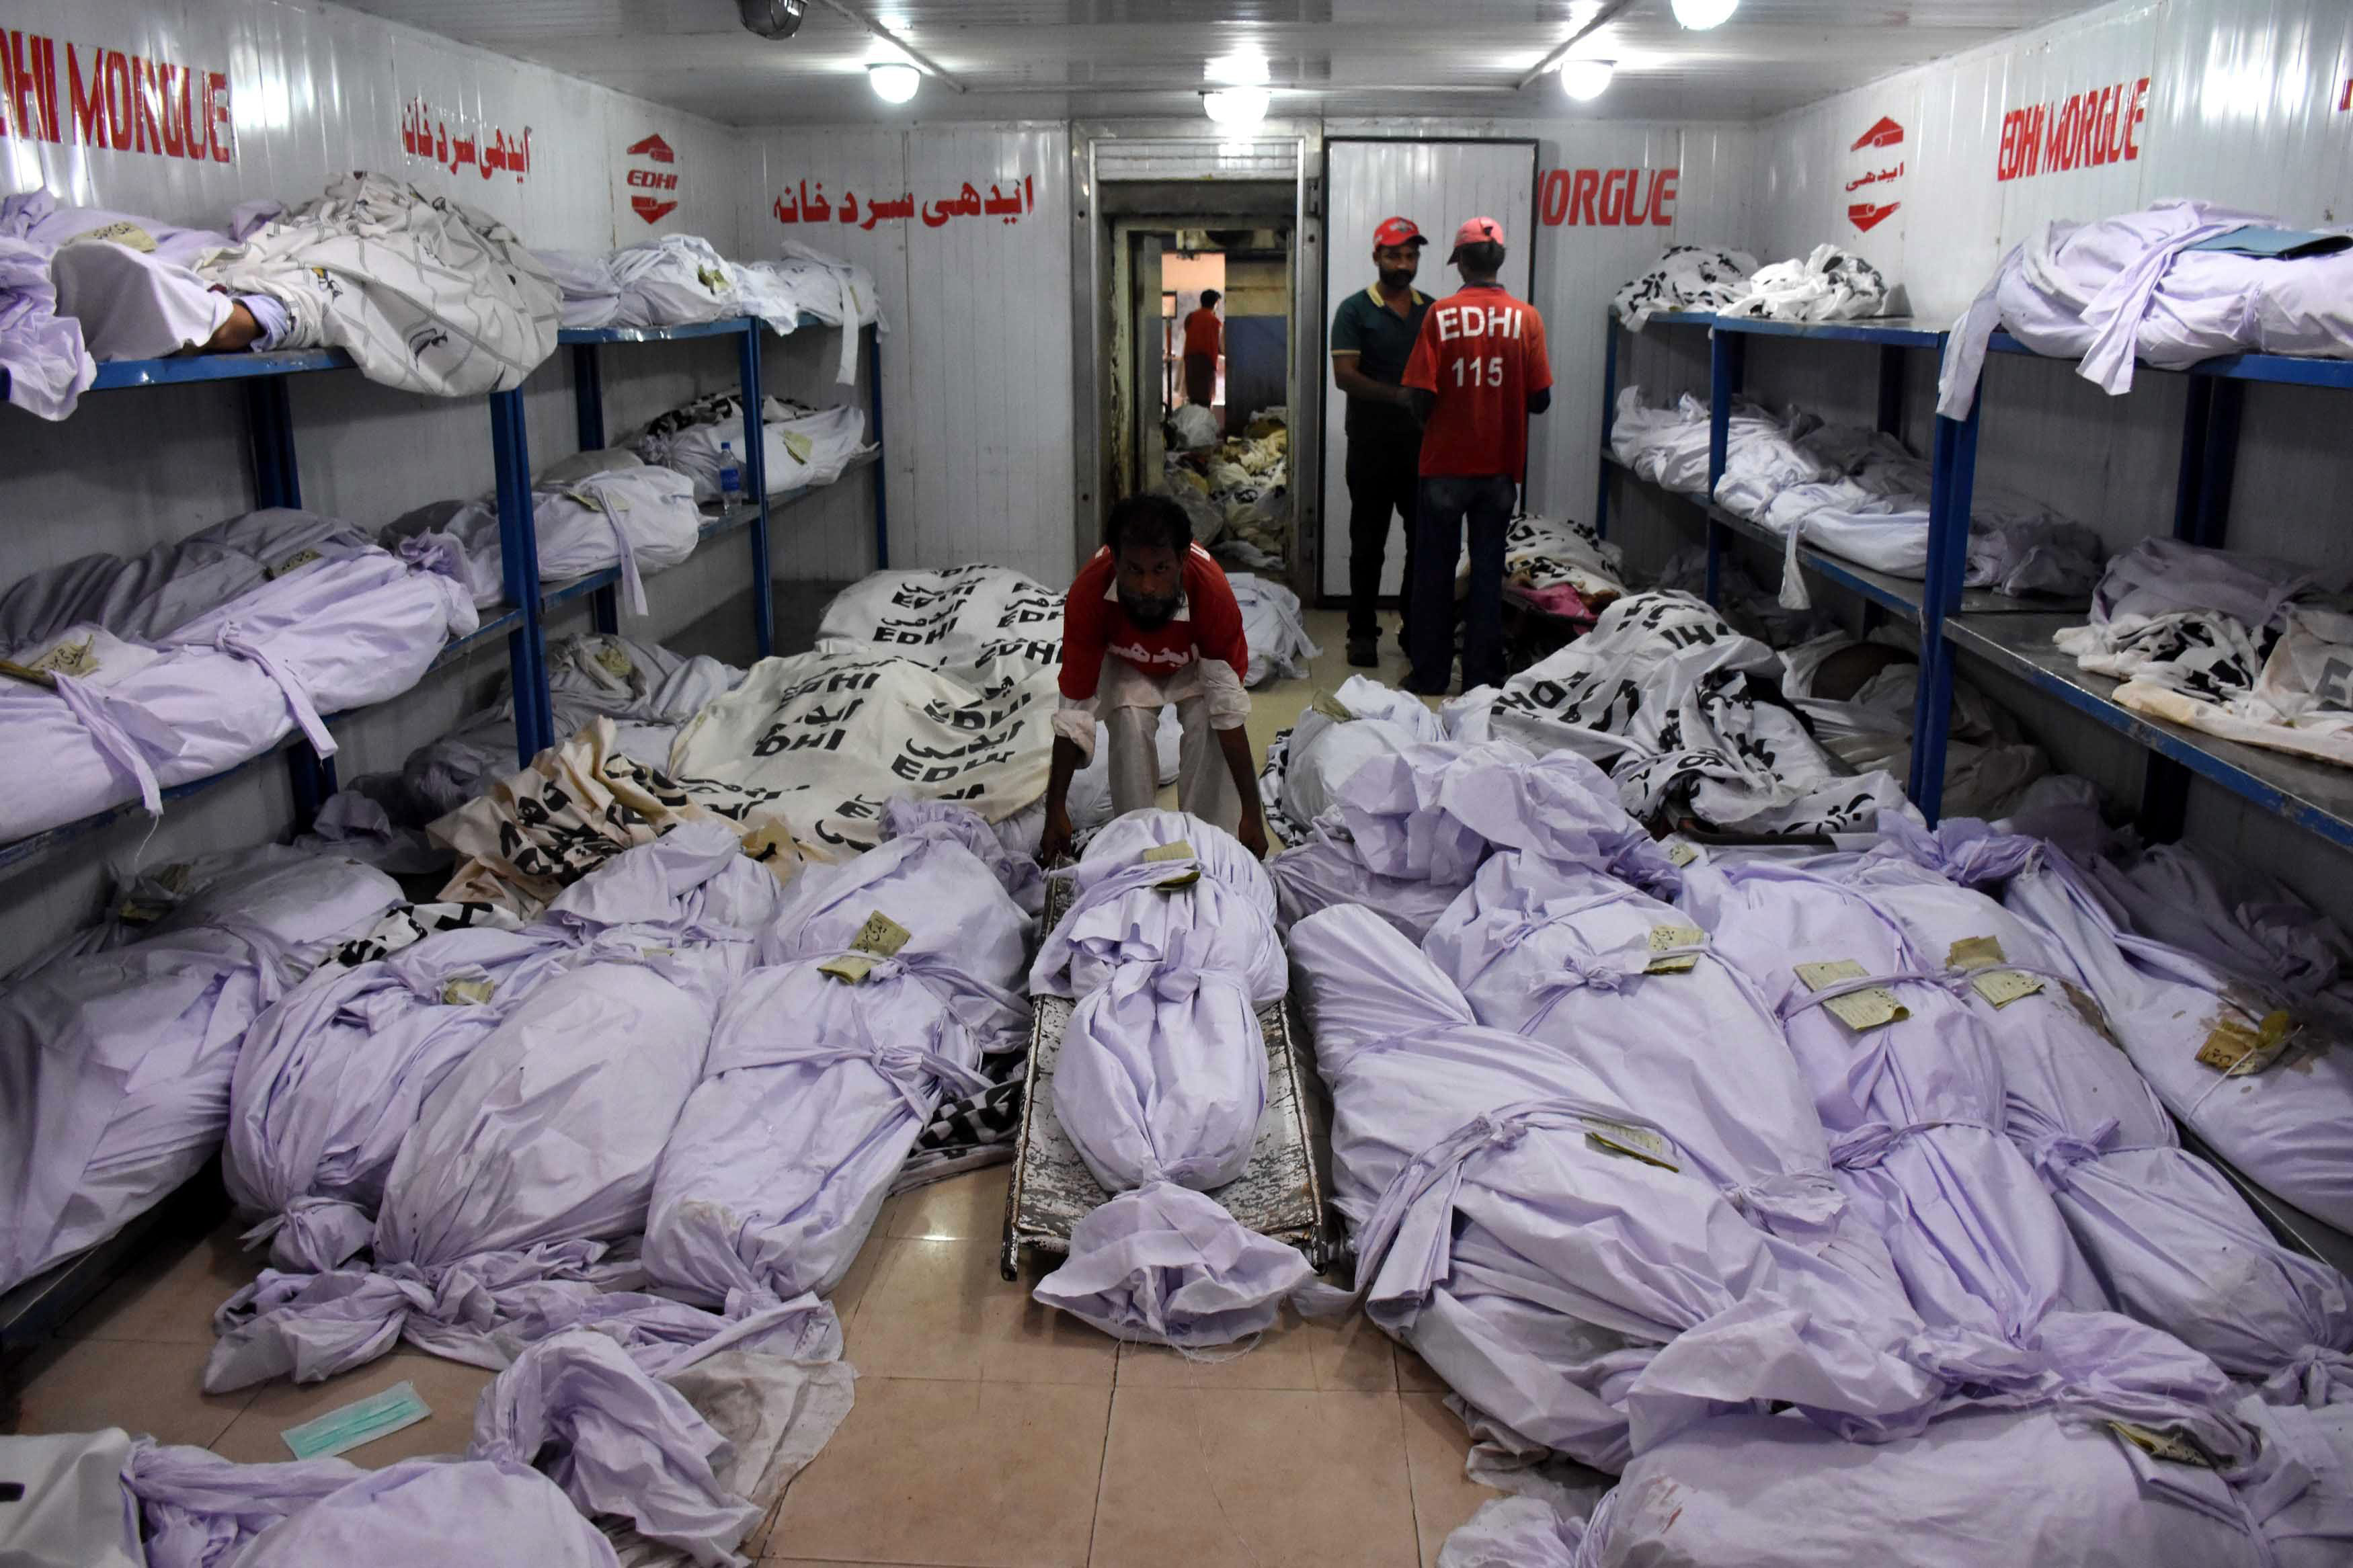 Rescue workers move the bodies of the victims of heat wave at a mortuary in Karachi, Pakistan, on June 22, 2015.